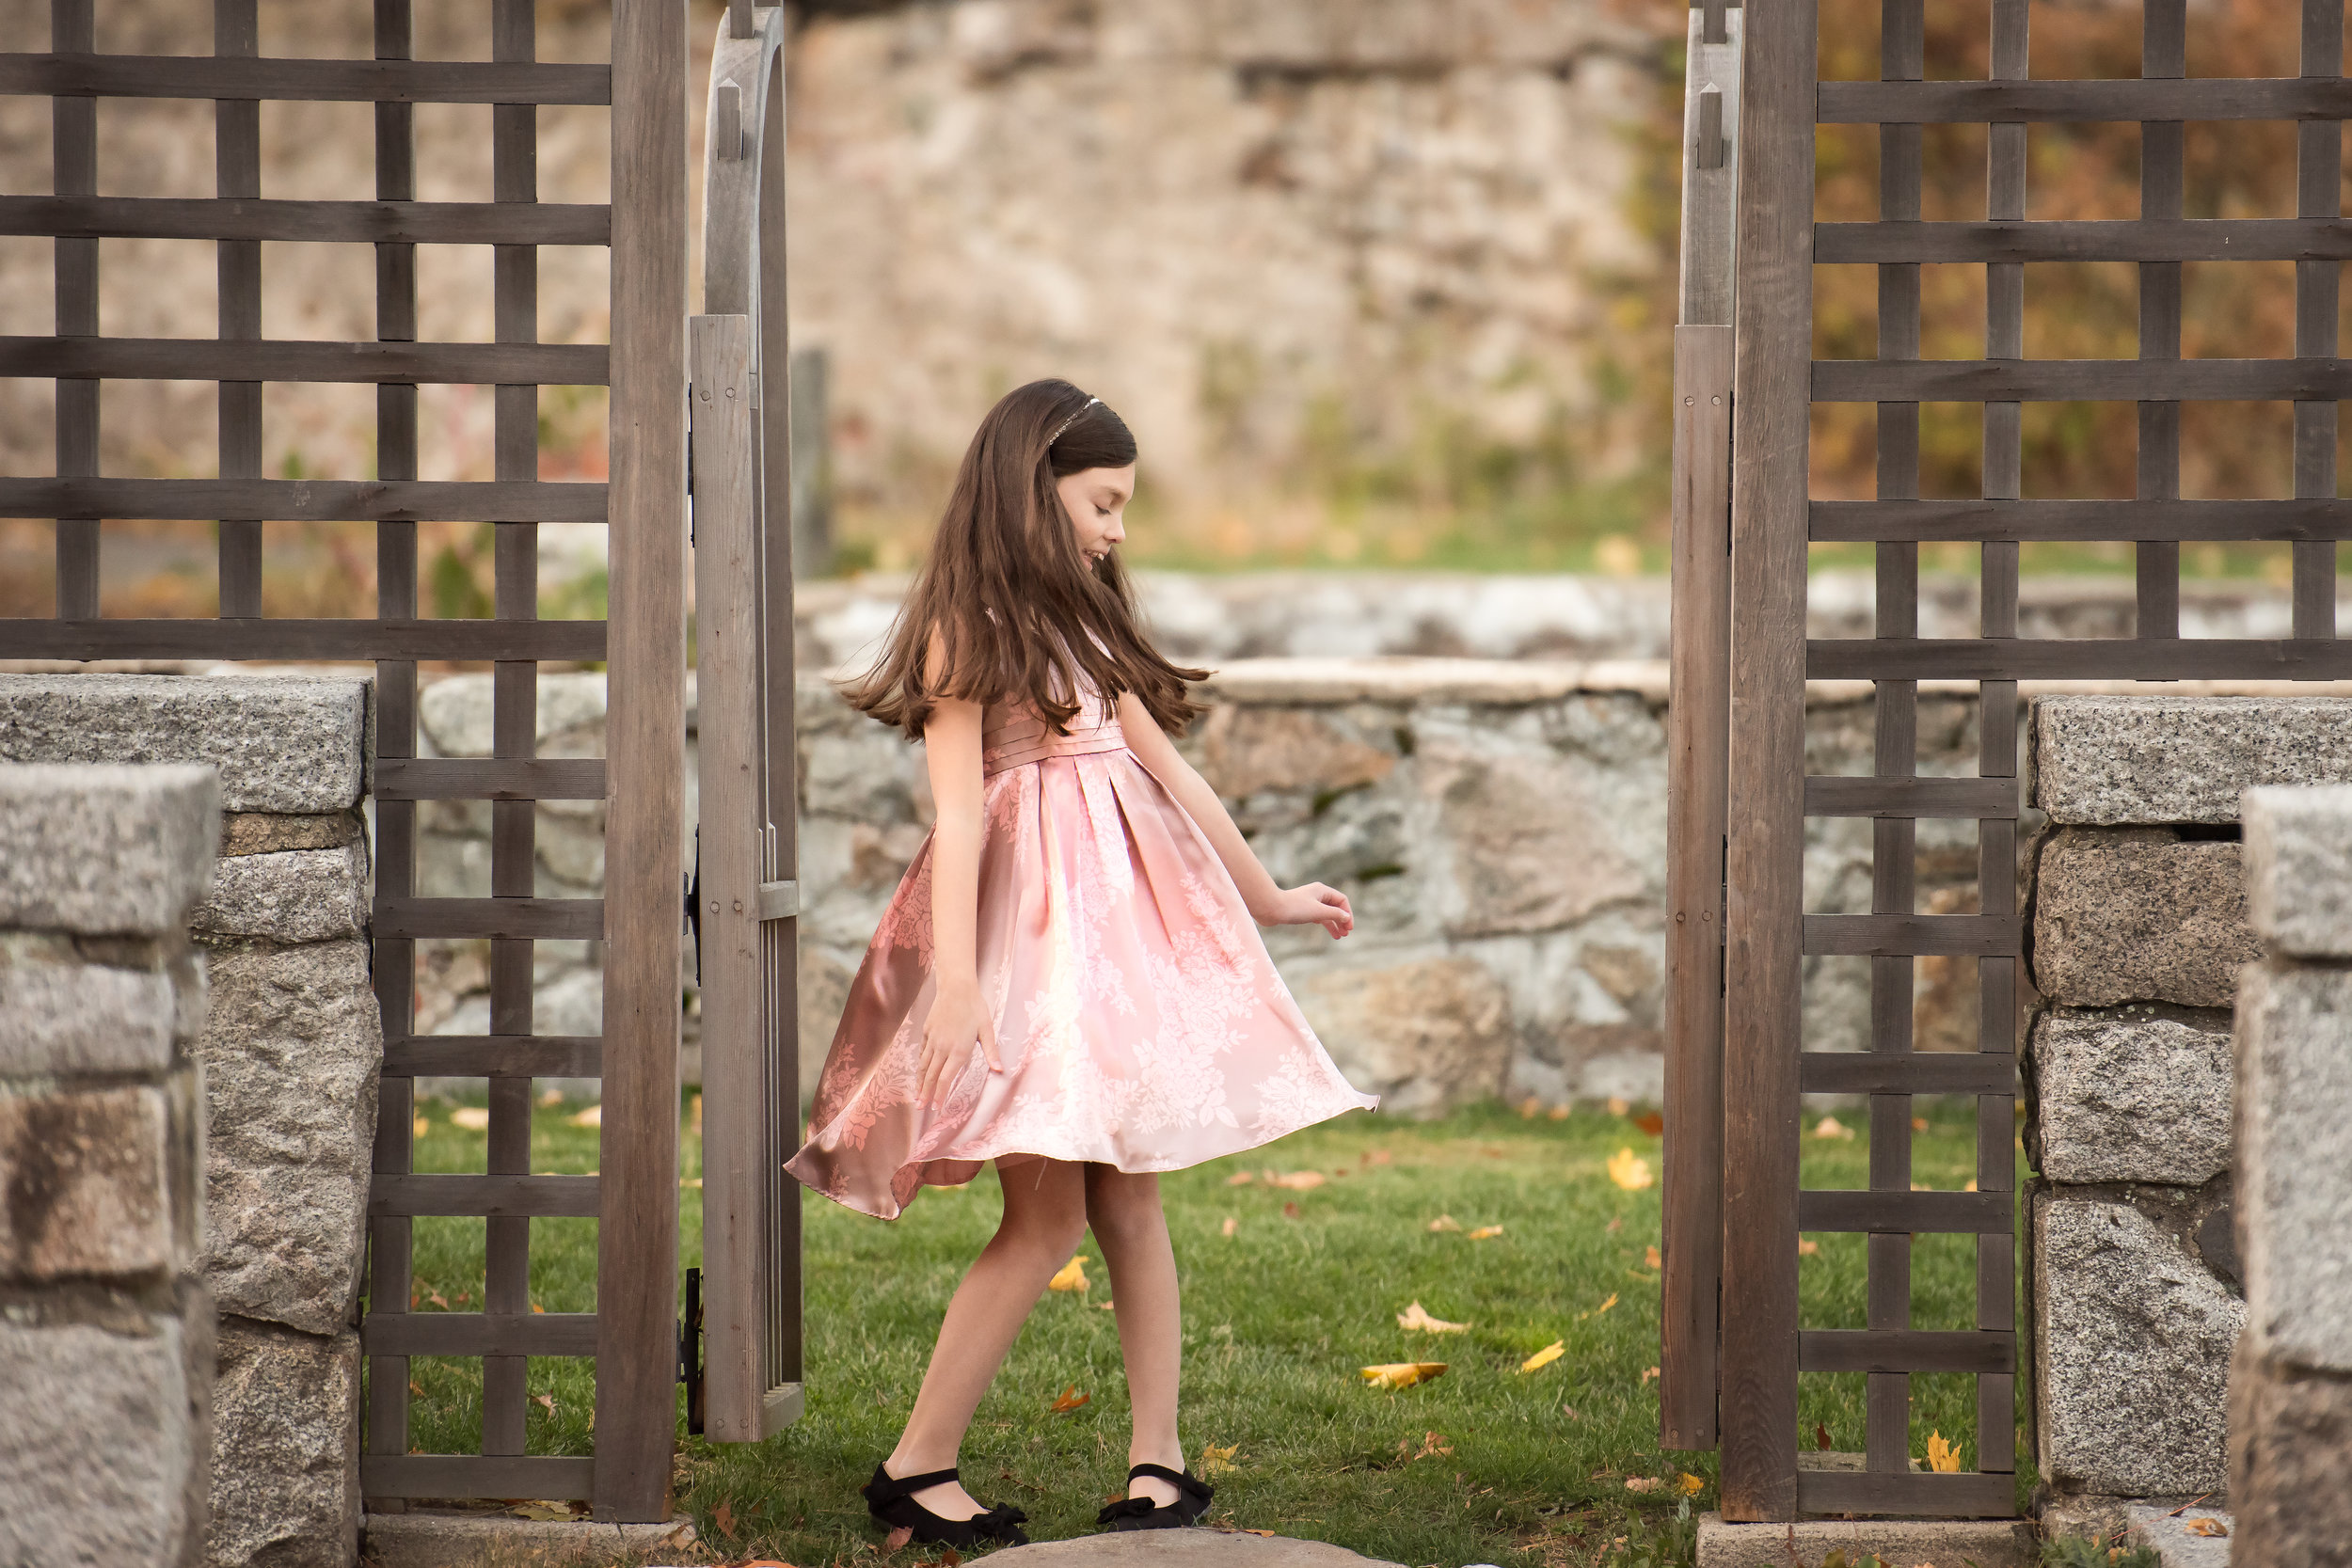 Girl Twirling at Outdoor Gate